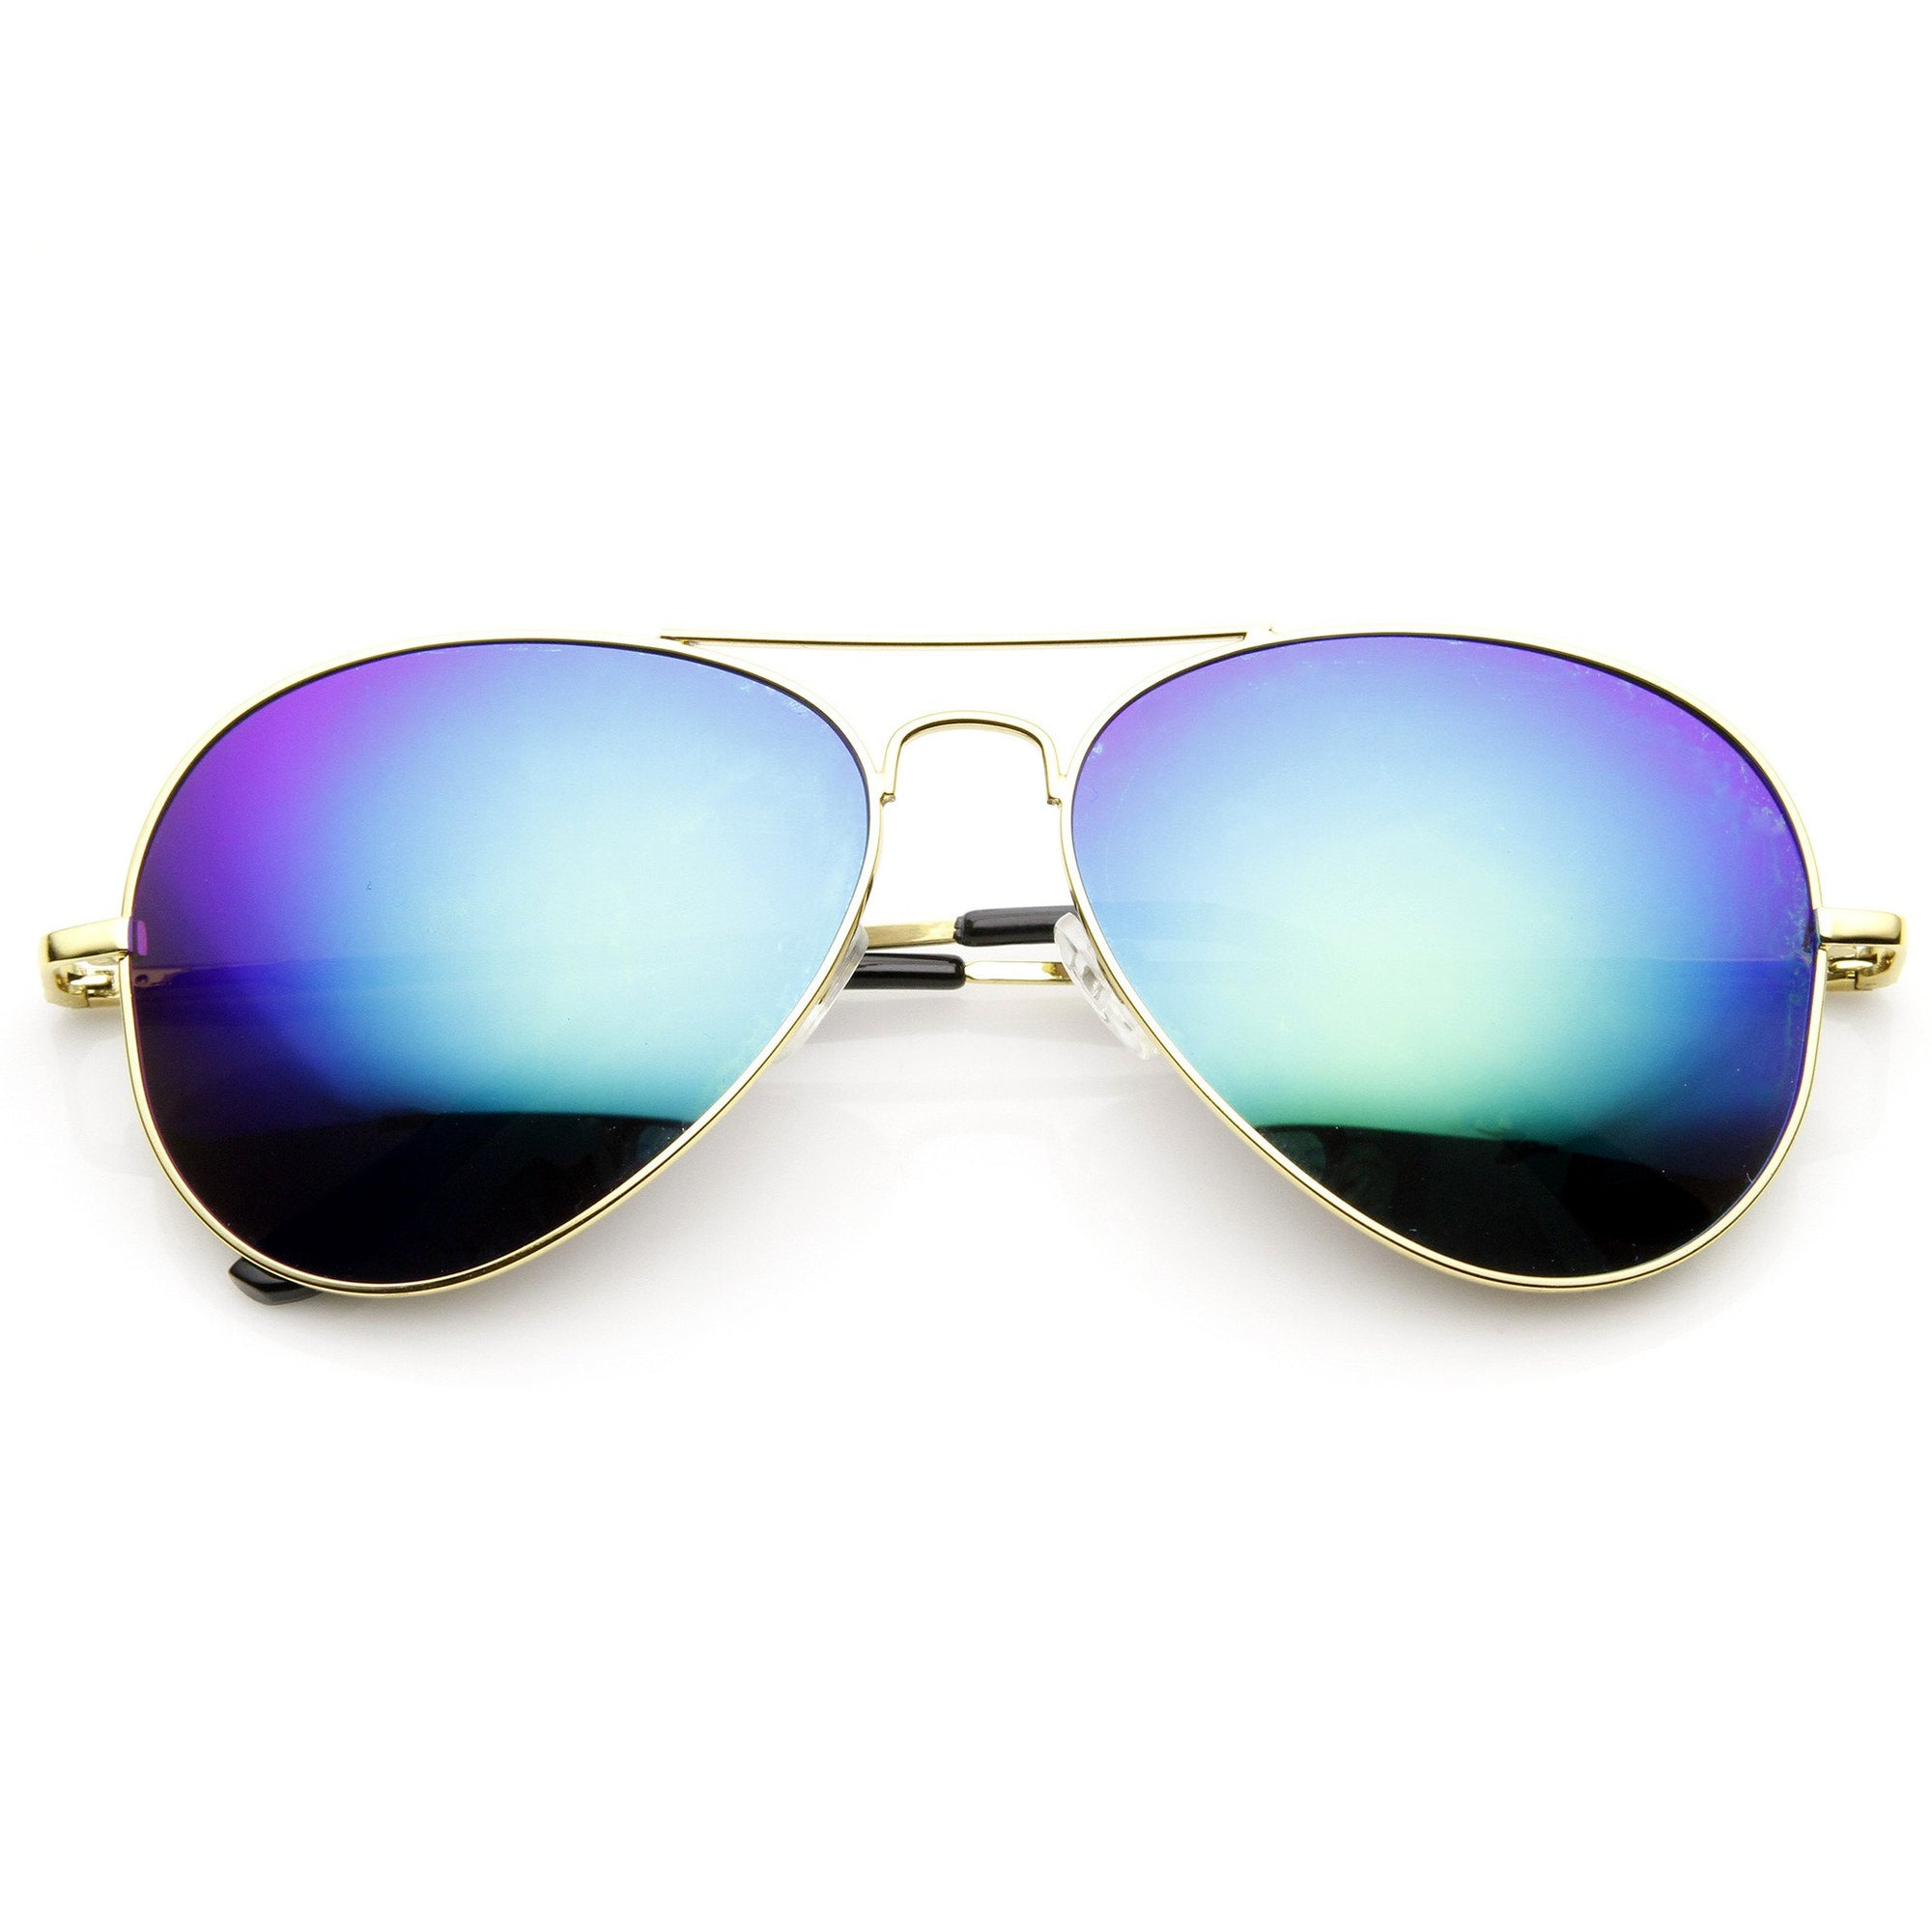 e502ca1ea6 Zerouv Full Gold Frame Flash Color Mirrored Lens Sunglasses 1486